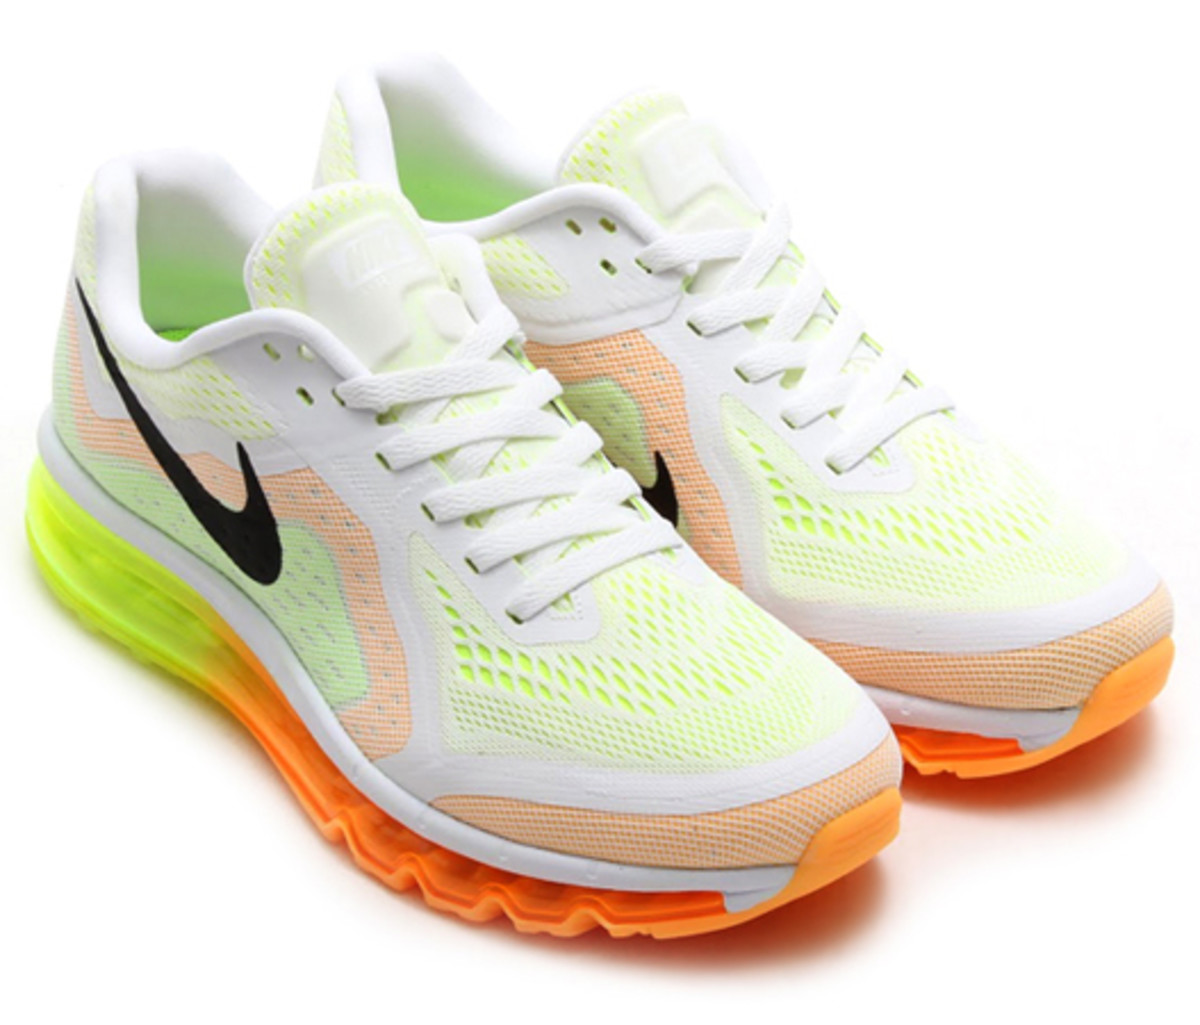 nike-air-max-2014-white-atomic-mango-volt-01